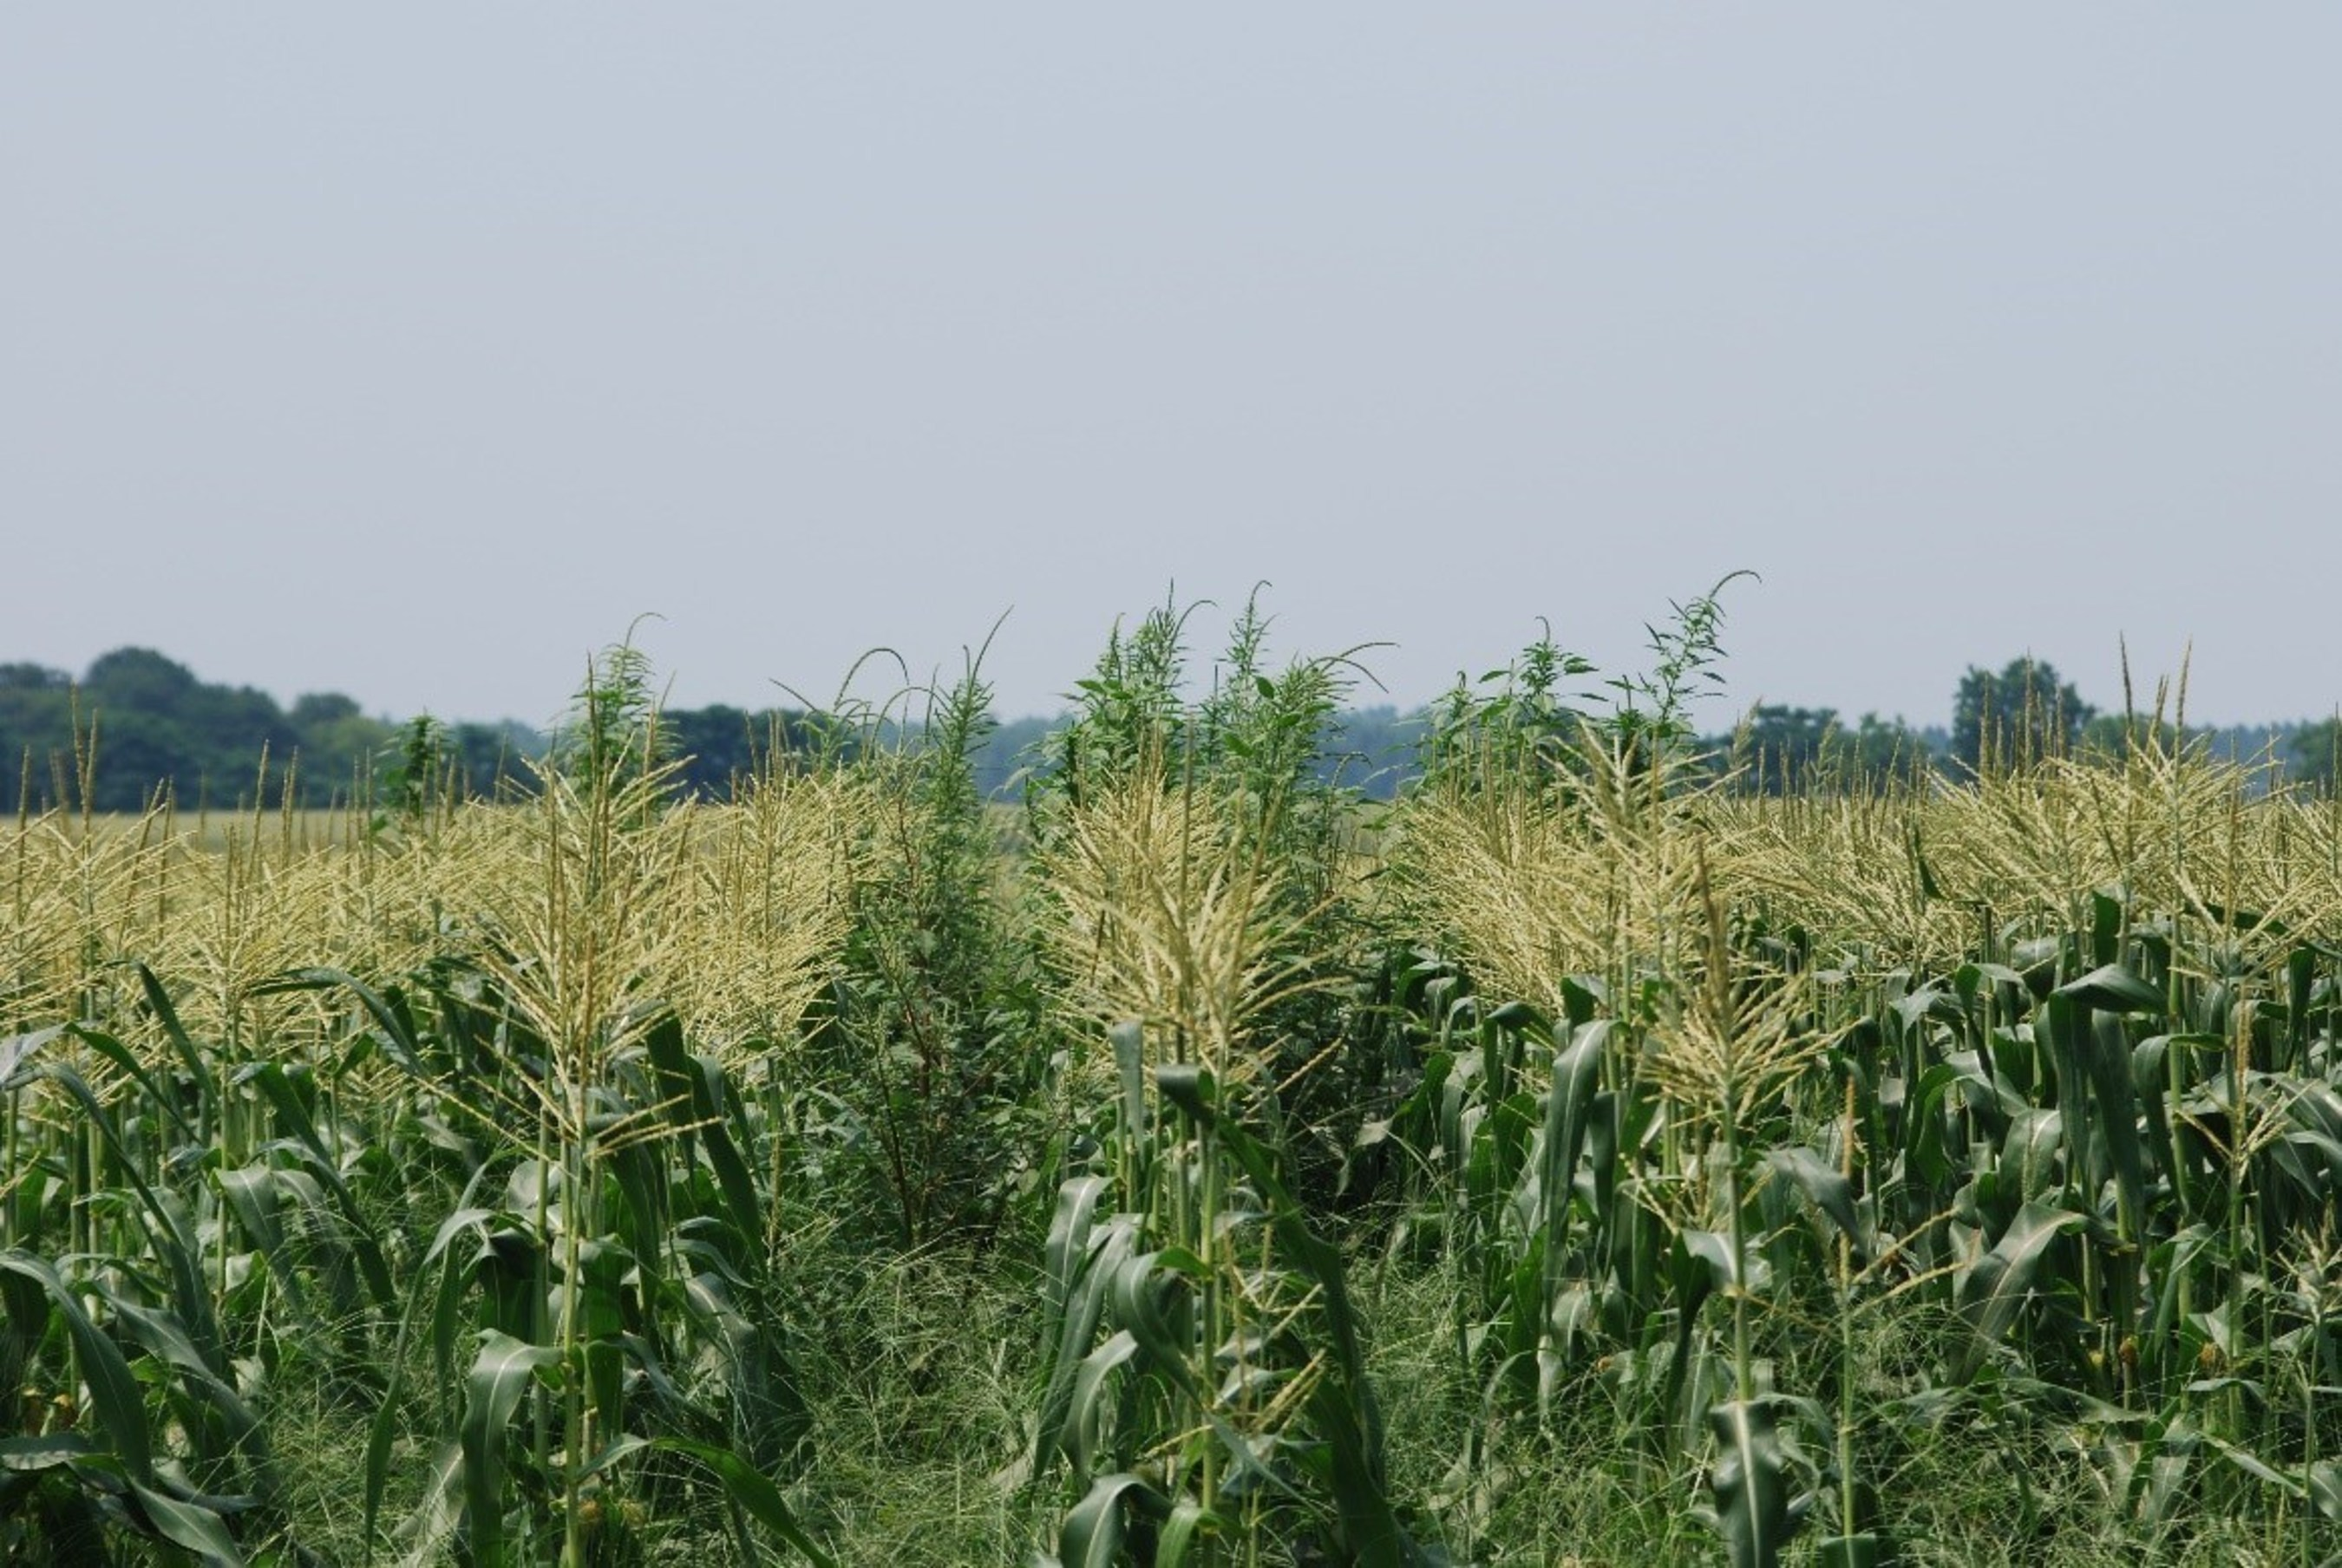 Corn growers regularly fight invasive weed species like this Palmer amaranth.